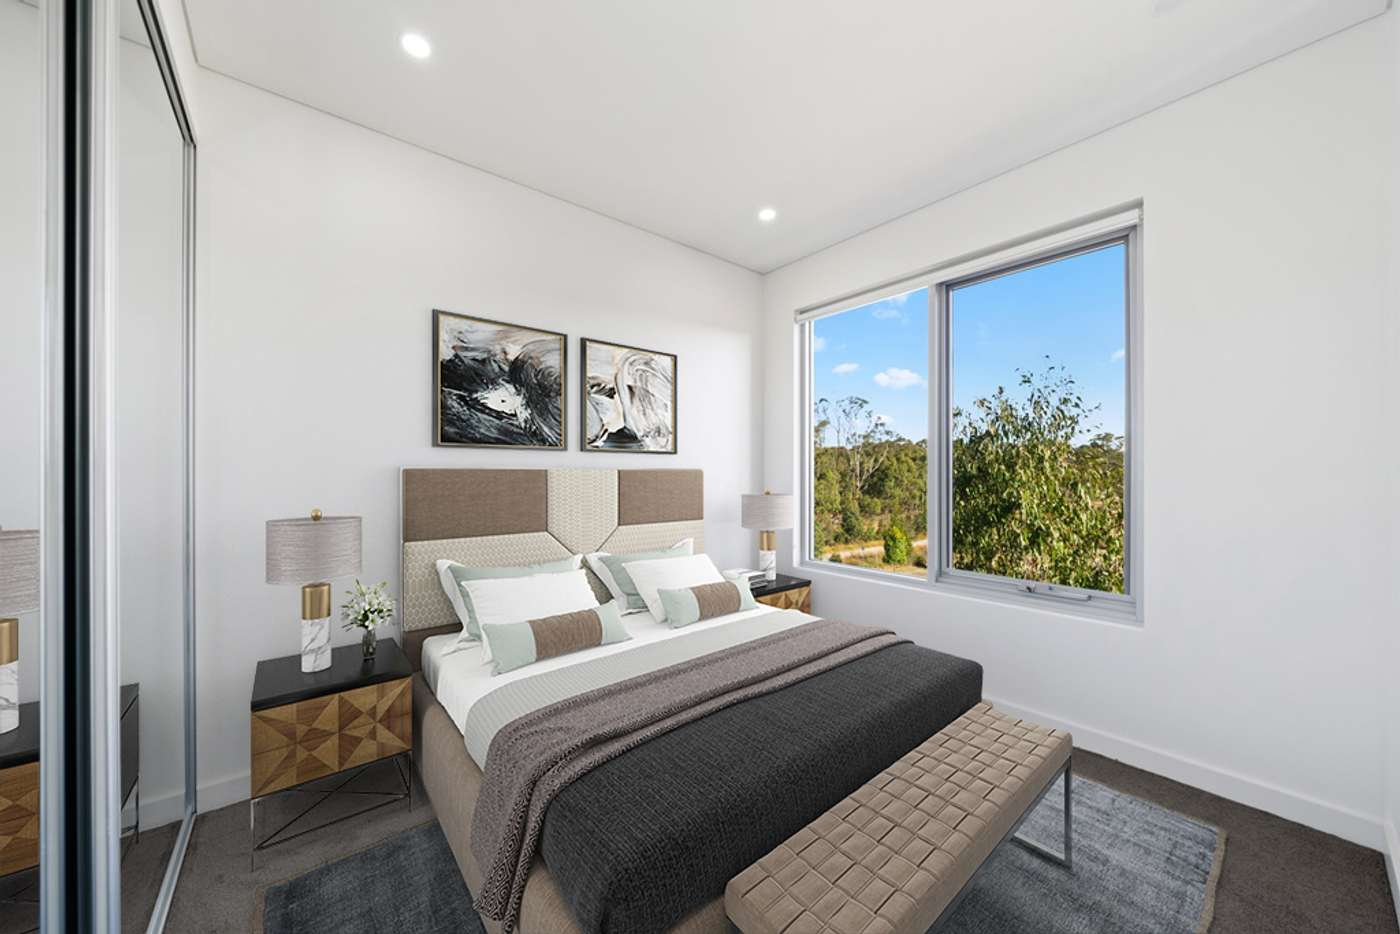 Fifth view of Homely unit listing, 98 Lakeside Parade, Jordan Springs NSW 2747